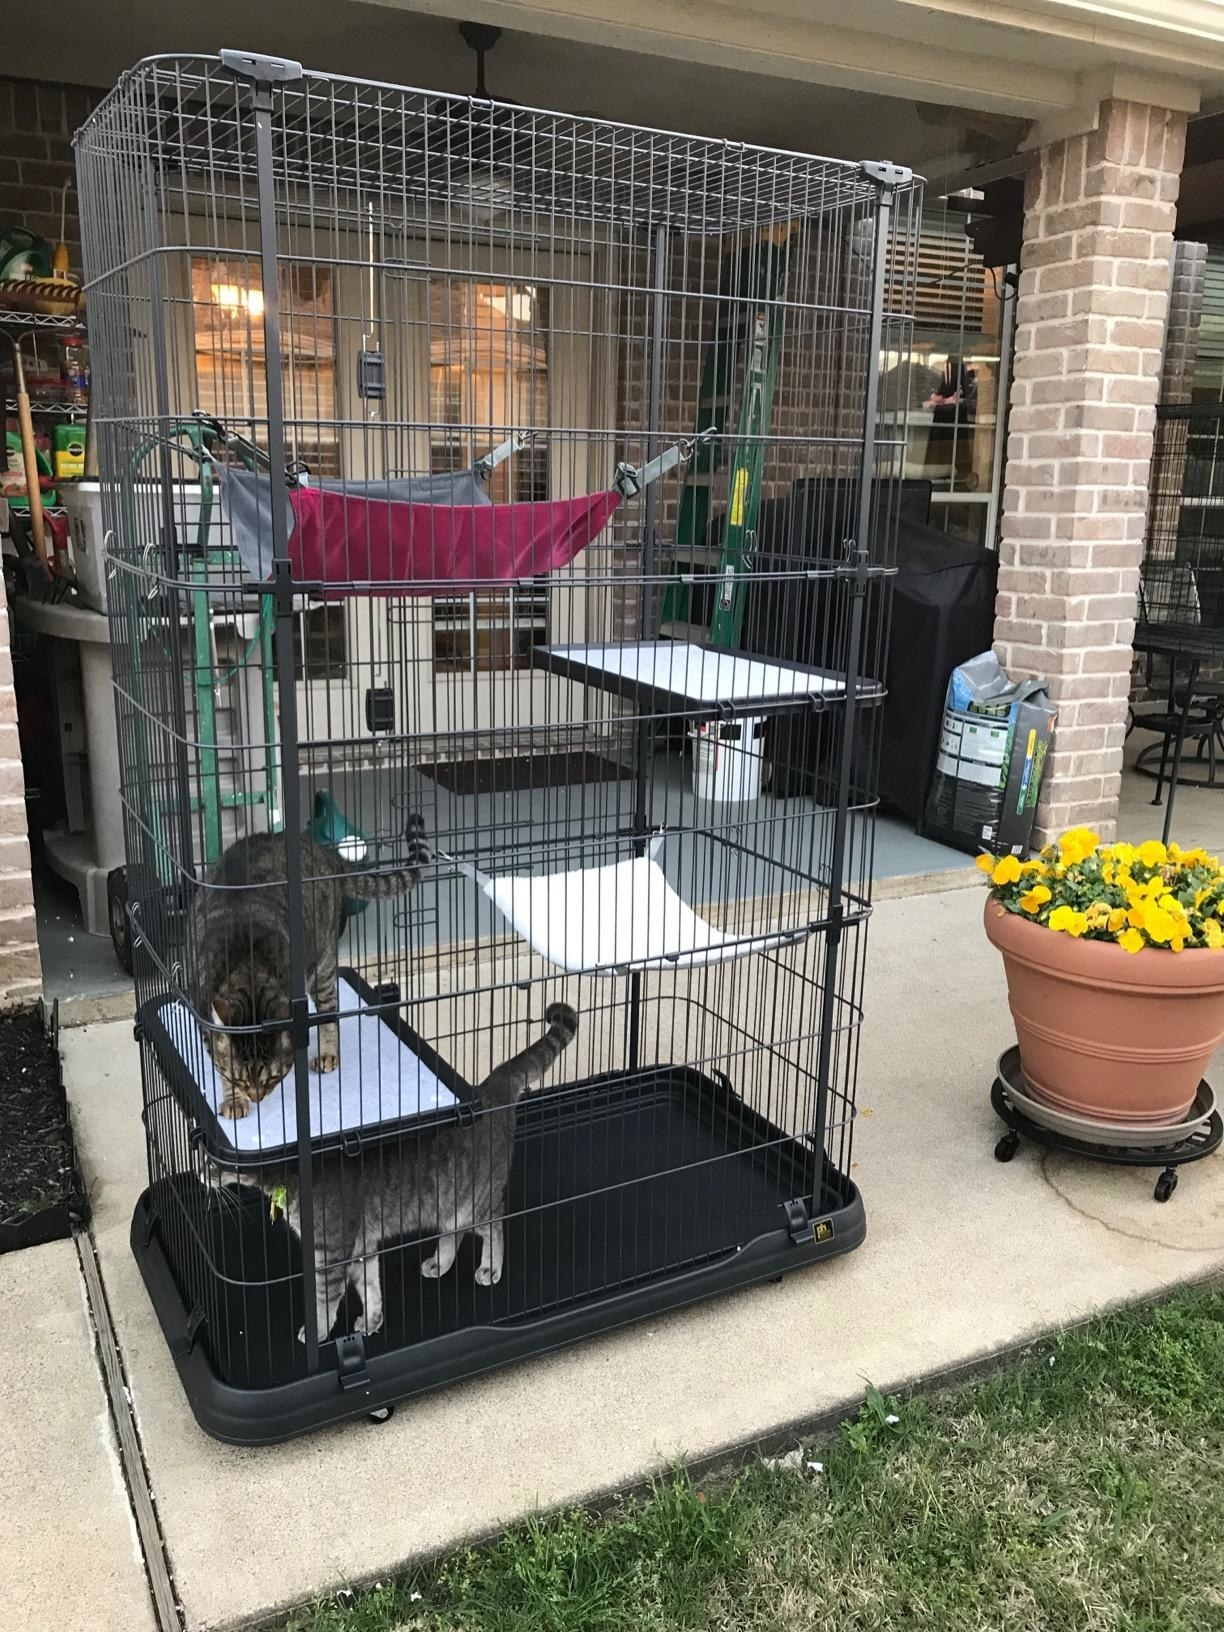 Reviewer photo of two of their cats in the playpen